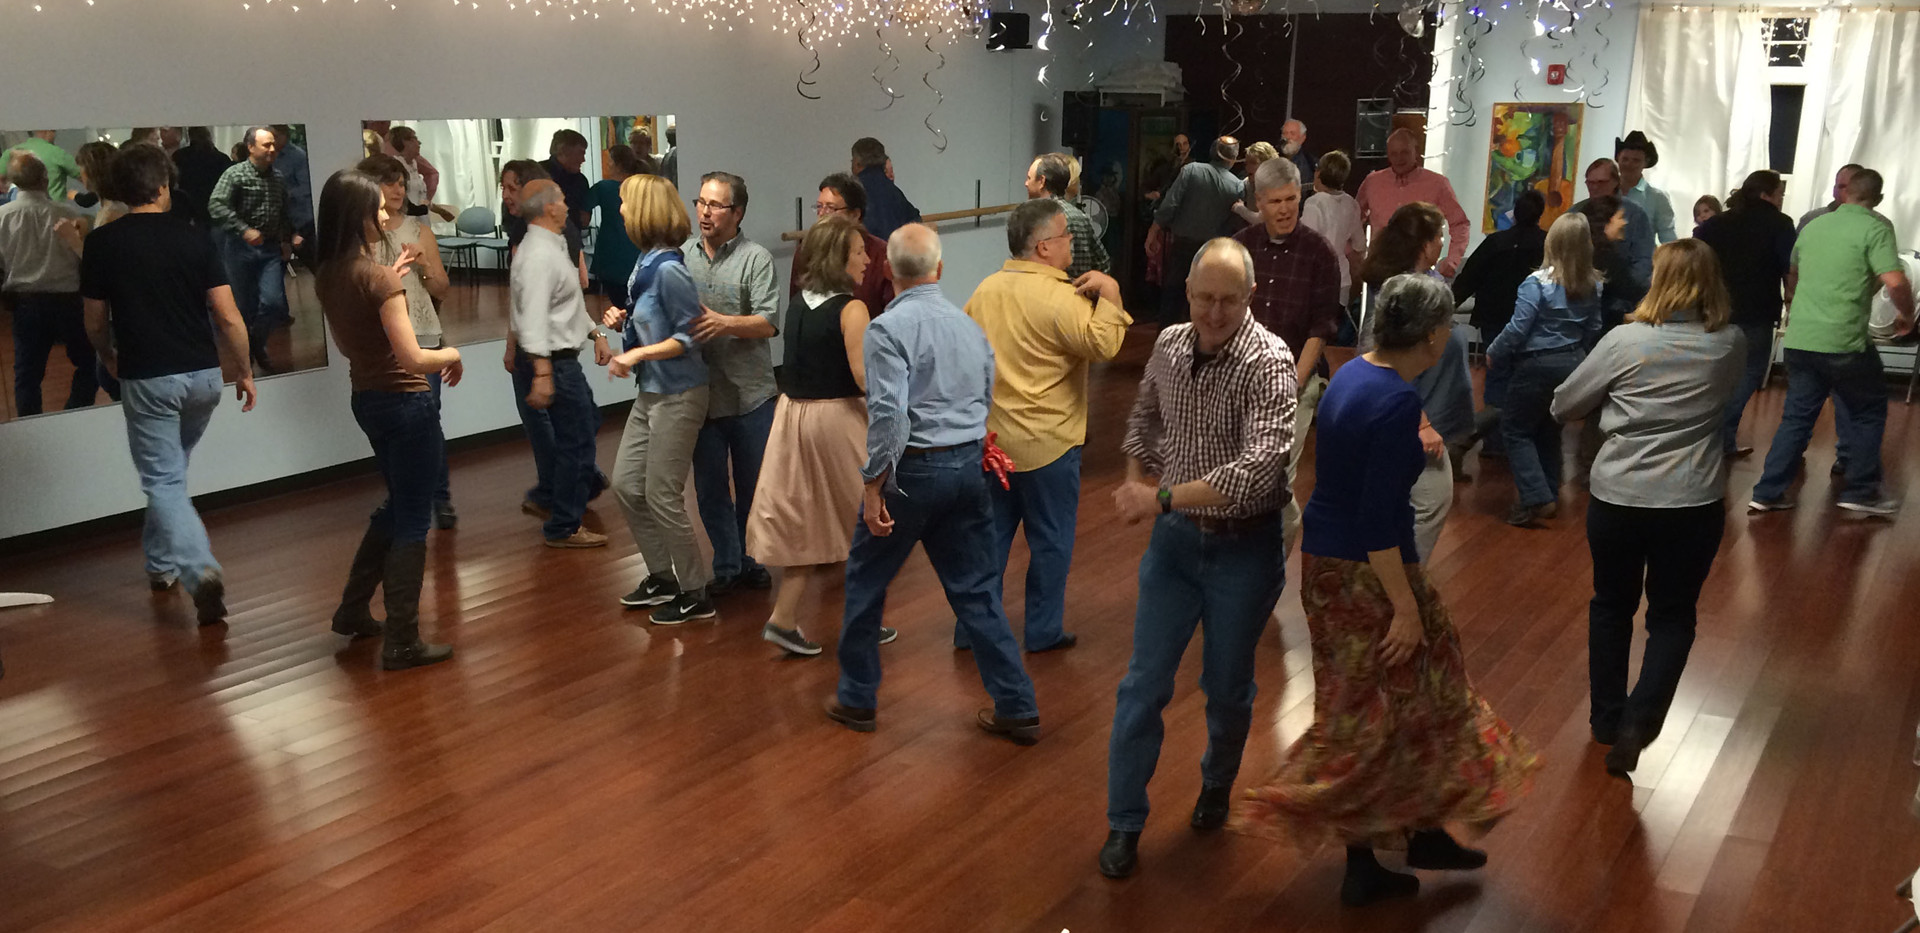 Square Dance party (private rental)